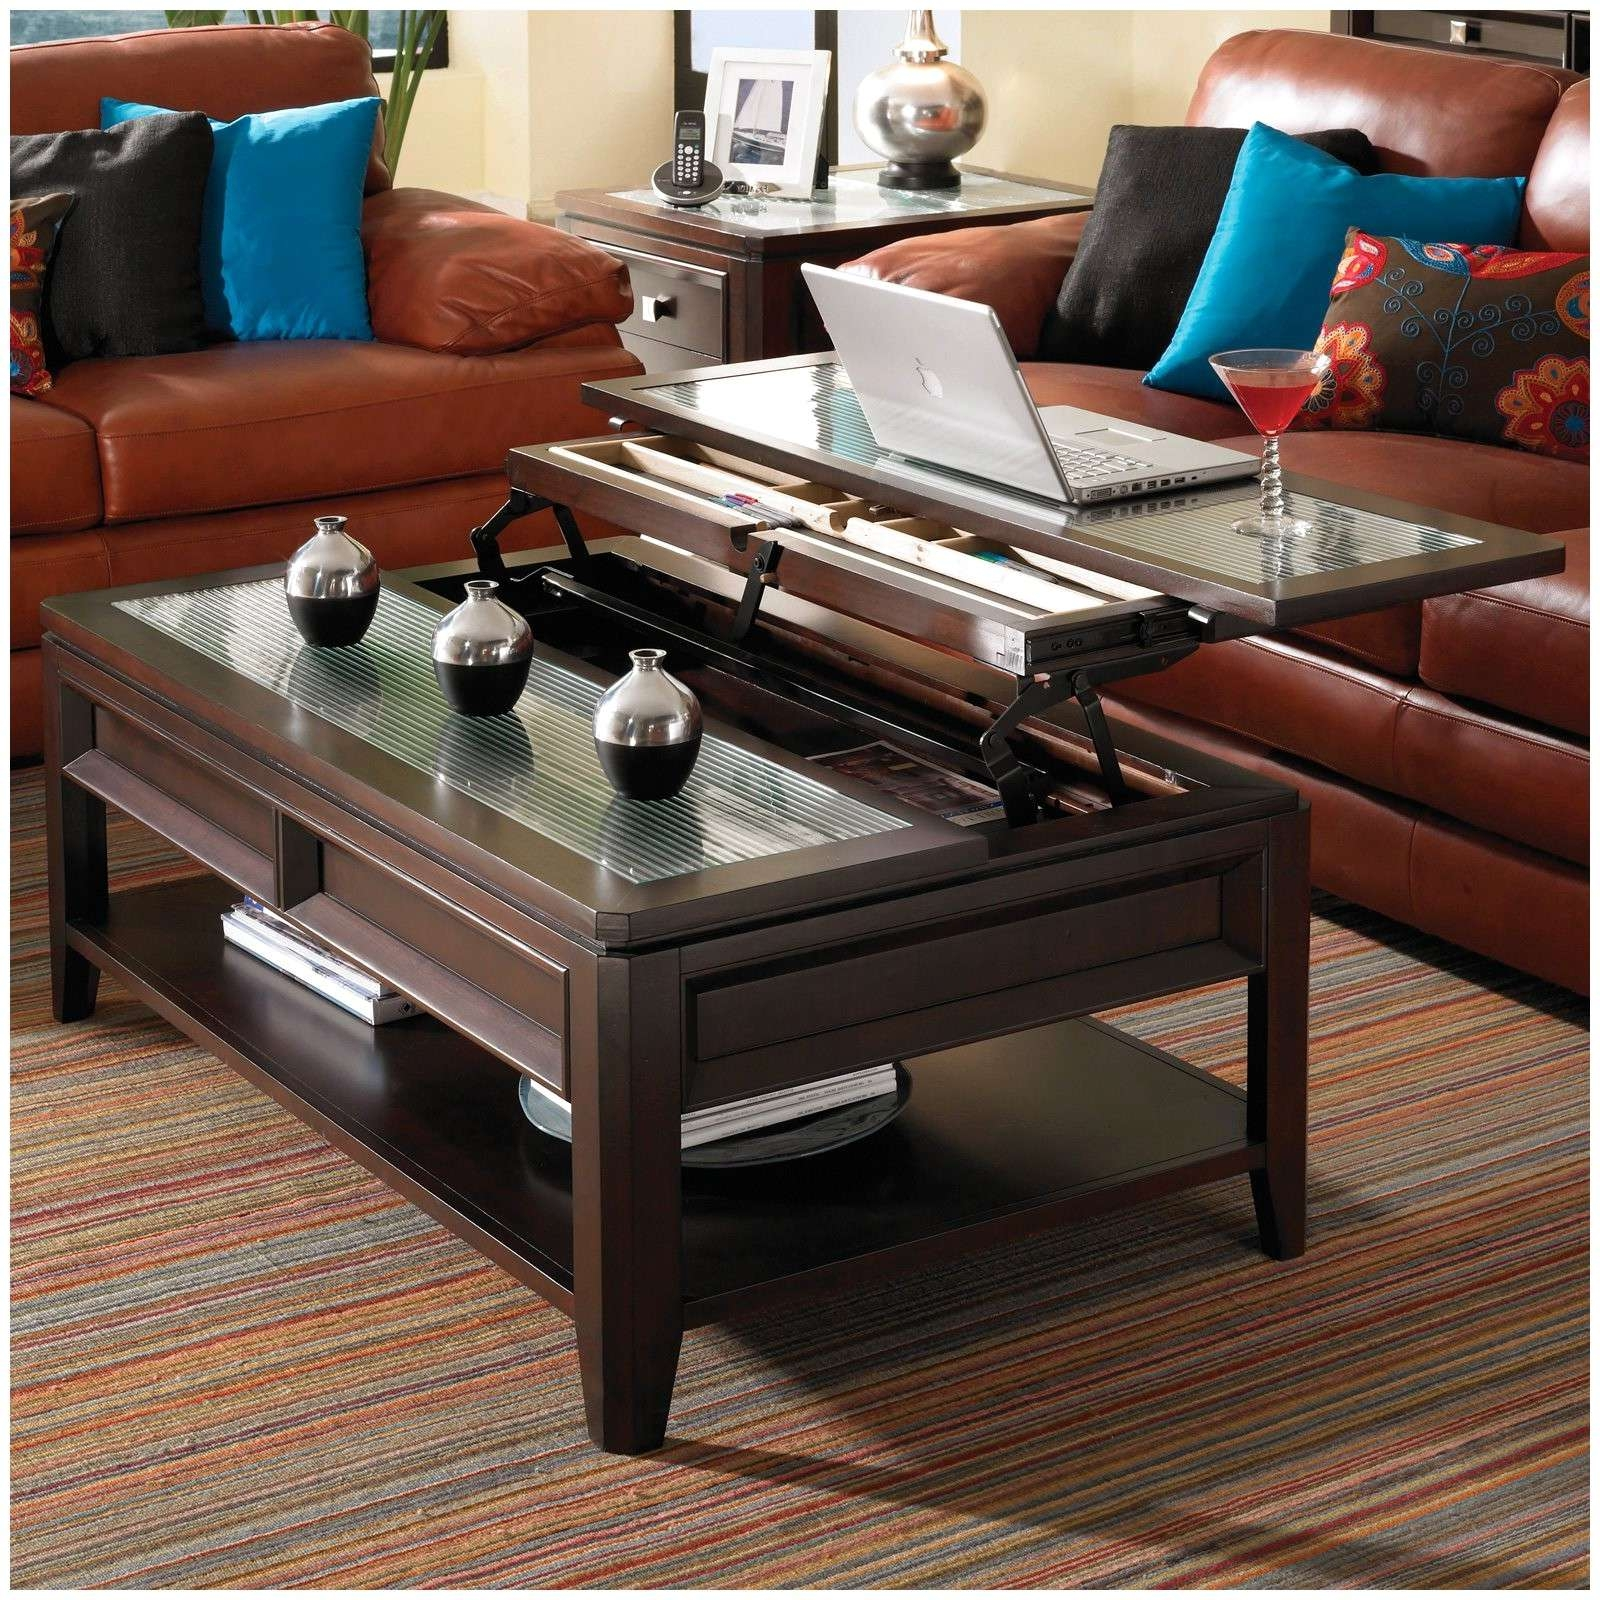 2017 Raise Up Coffee Tables Intended For Coffee Tables That Raise Up 19703 Coffee Table Astounding Coffee (View 10 of 20)